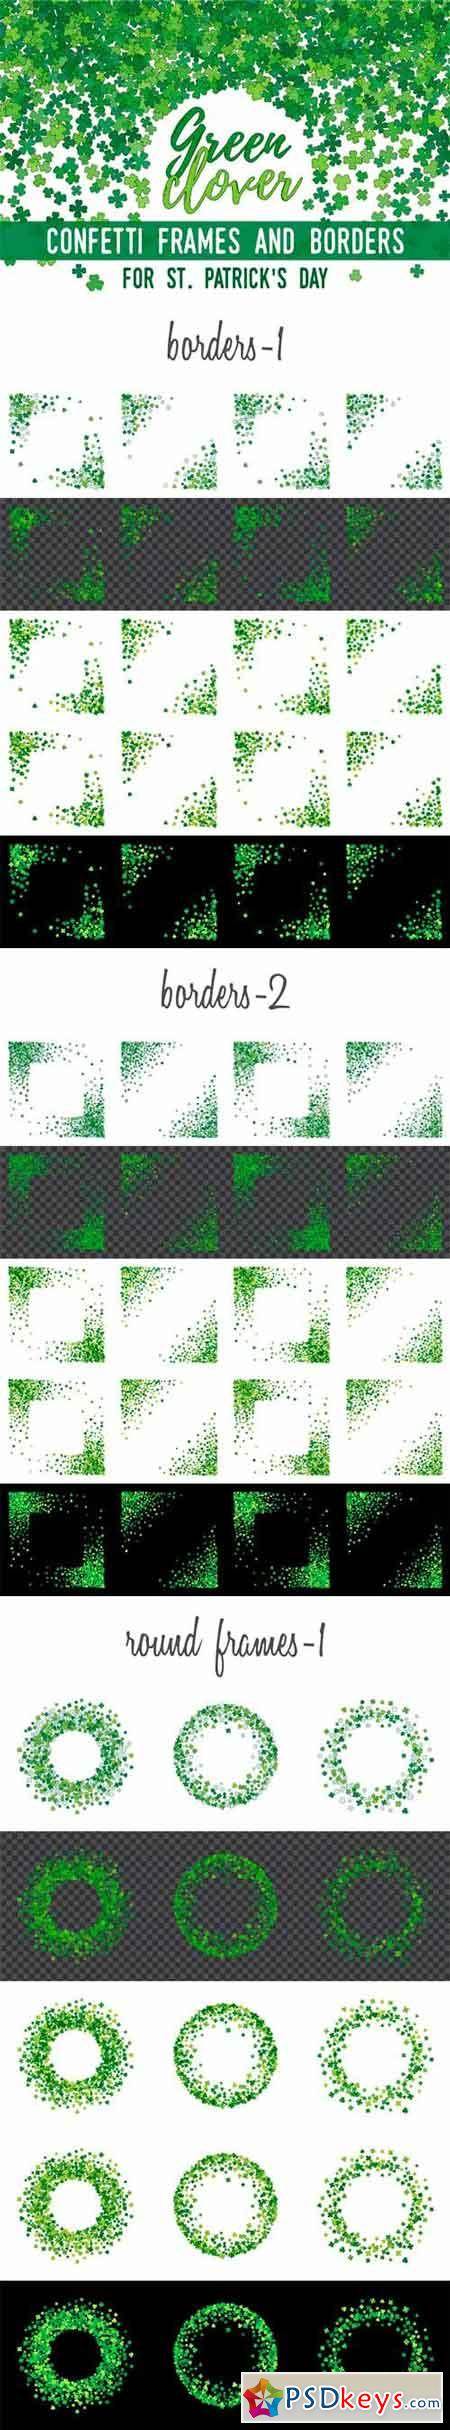 Green Clover Frames and Borders 1341824